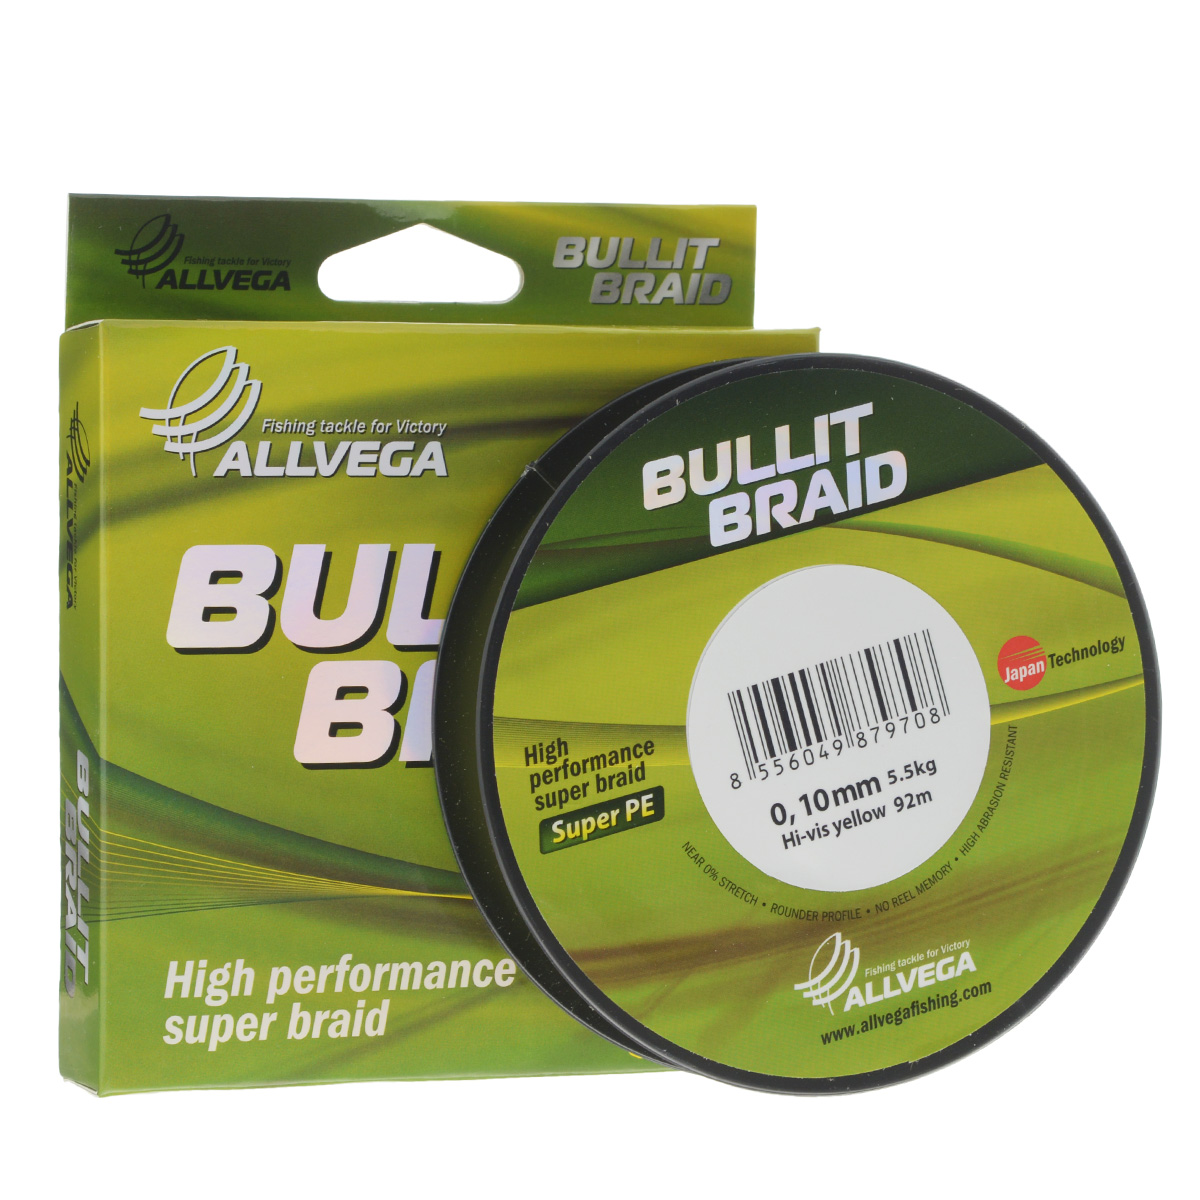 Леска плетеная Allvega Bullit Braid, цвет: ярко-желтый, 92 м, 0,10 мм, 5,5 кг